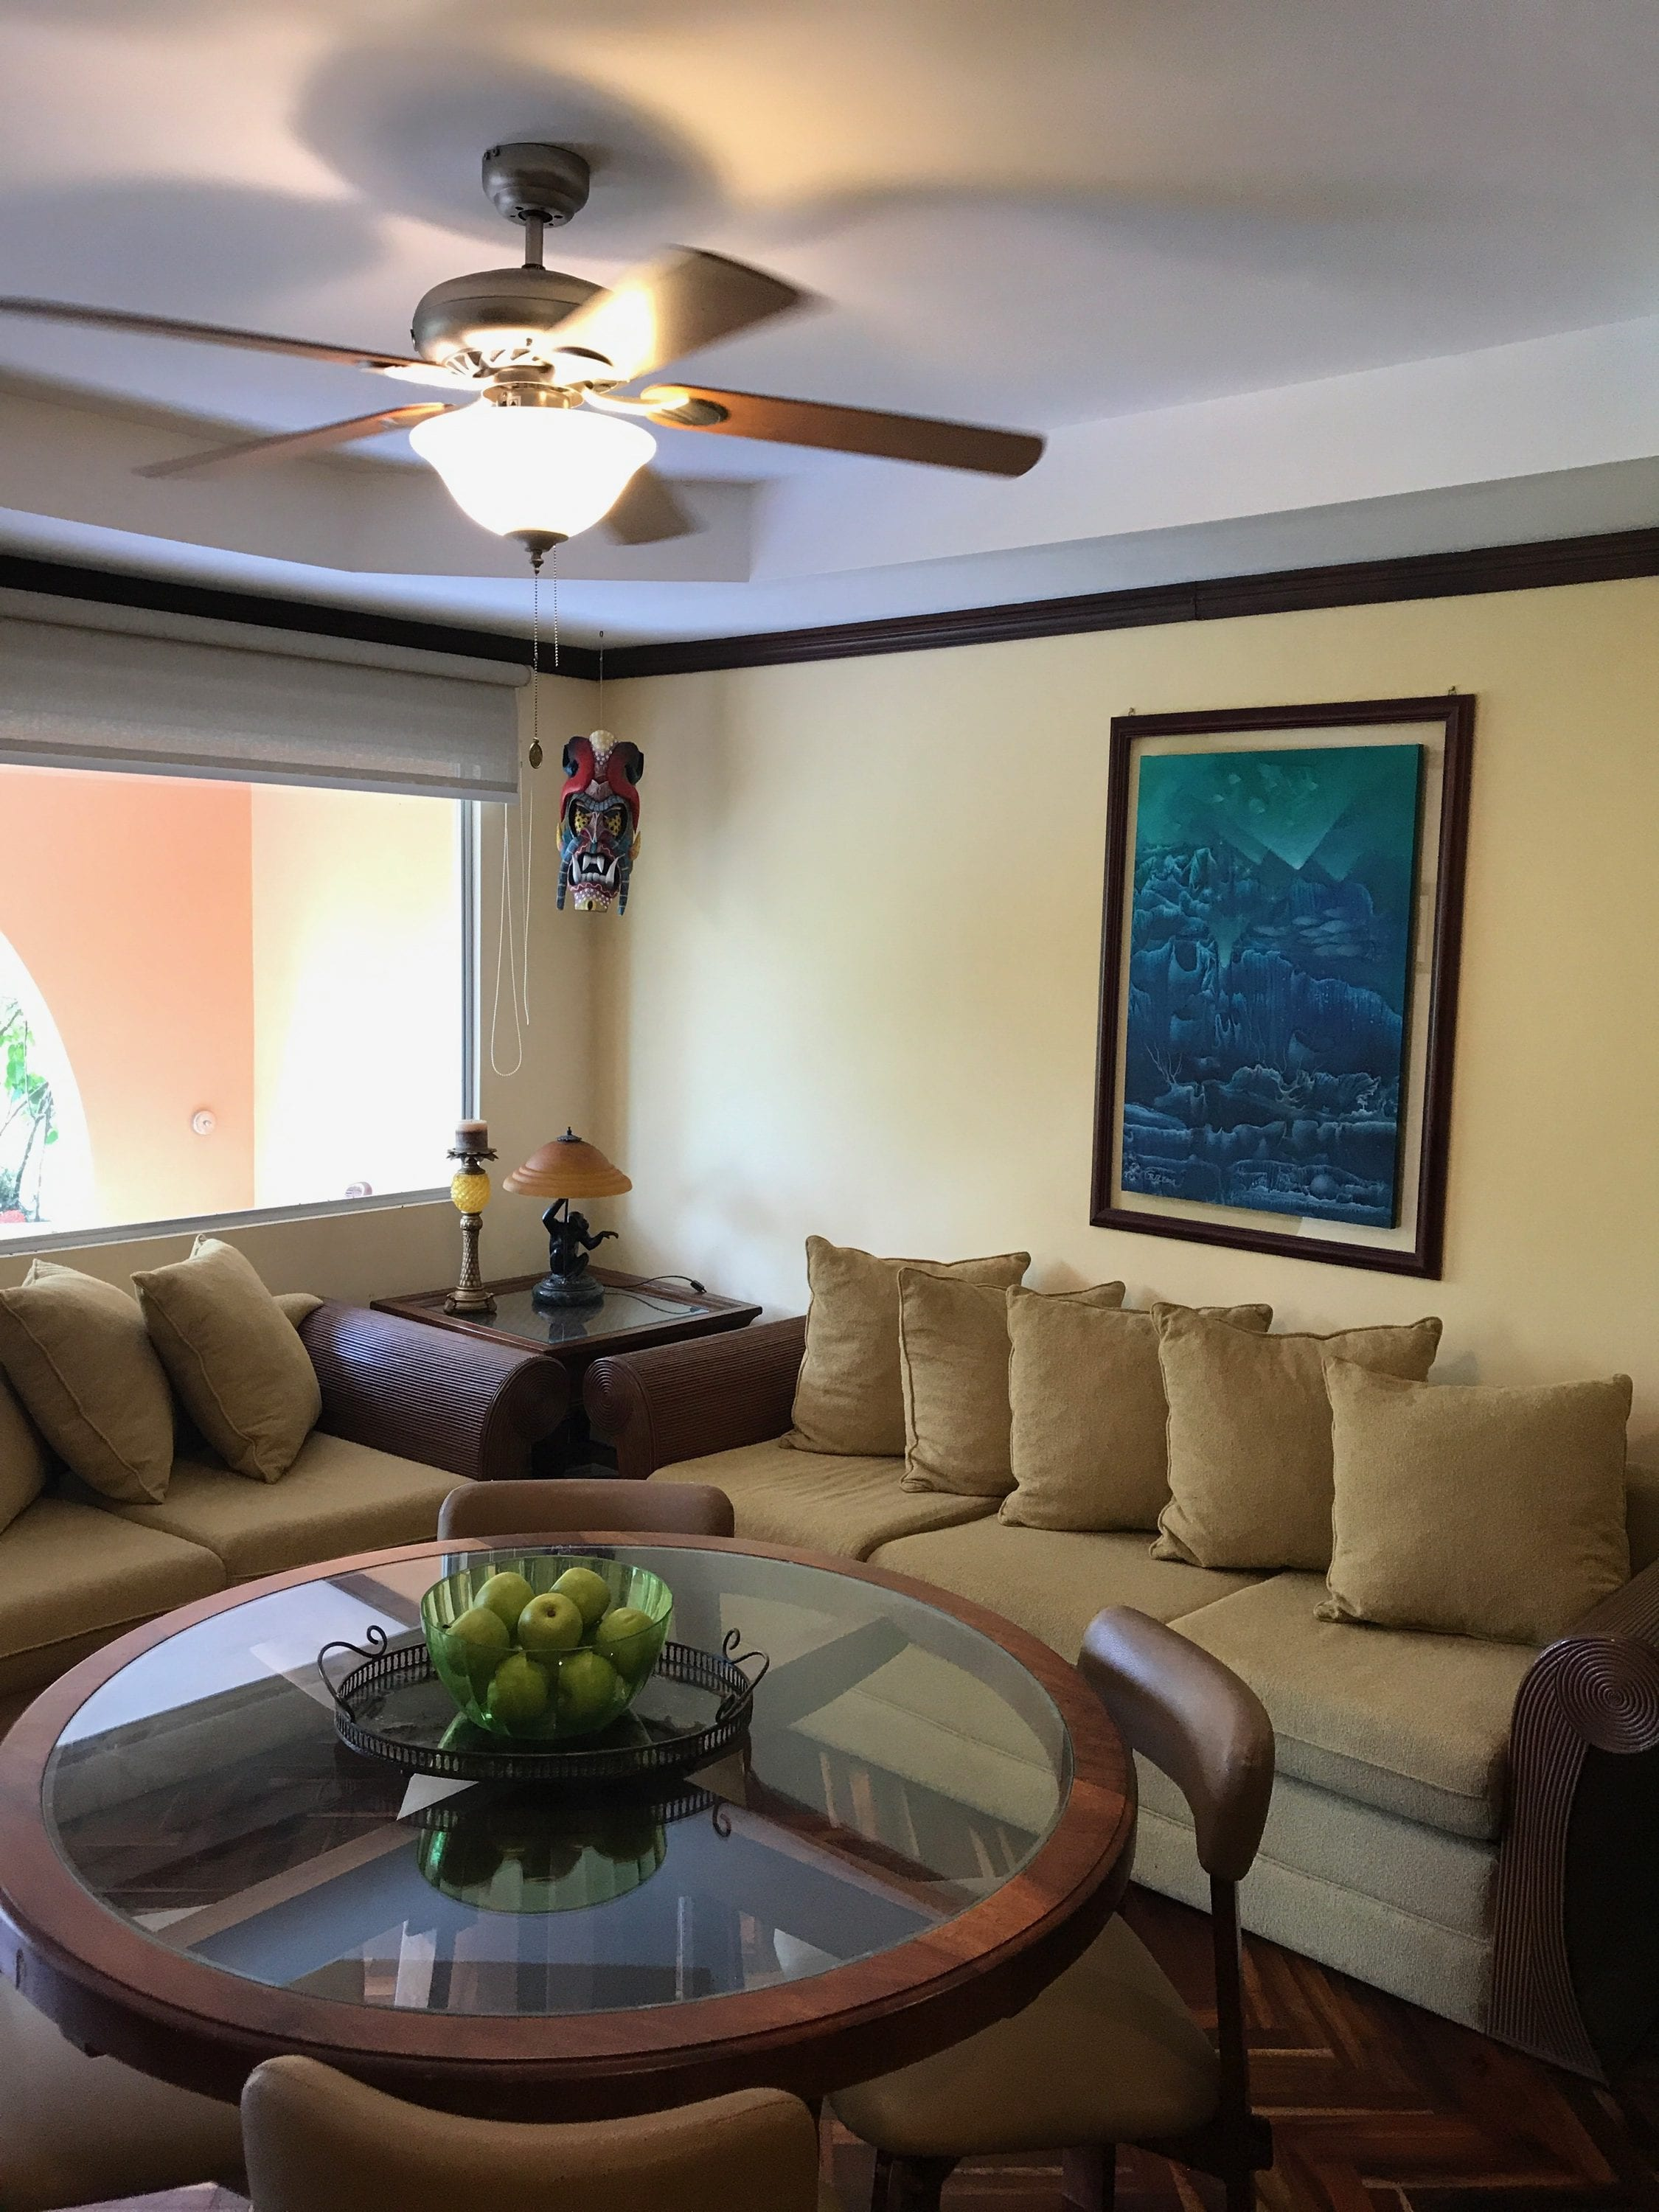 Condo 2 bedroom ground floor unit with shared pool at isla damas